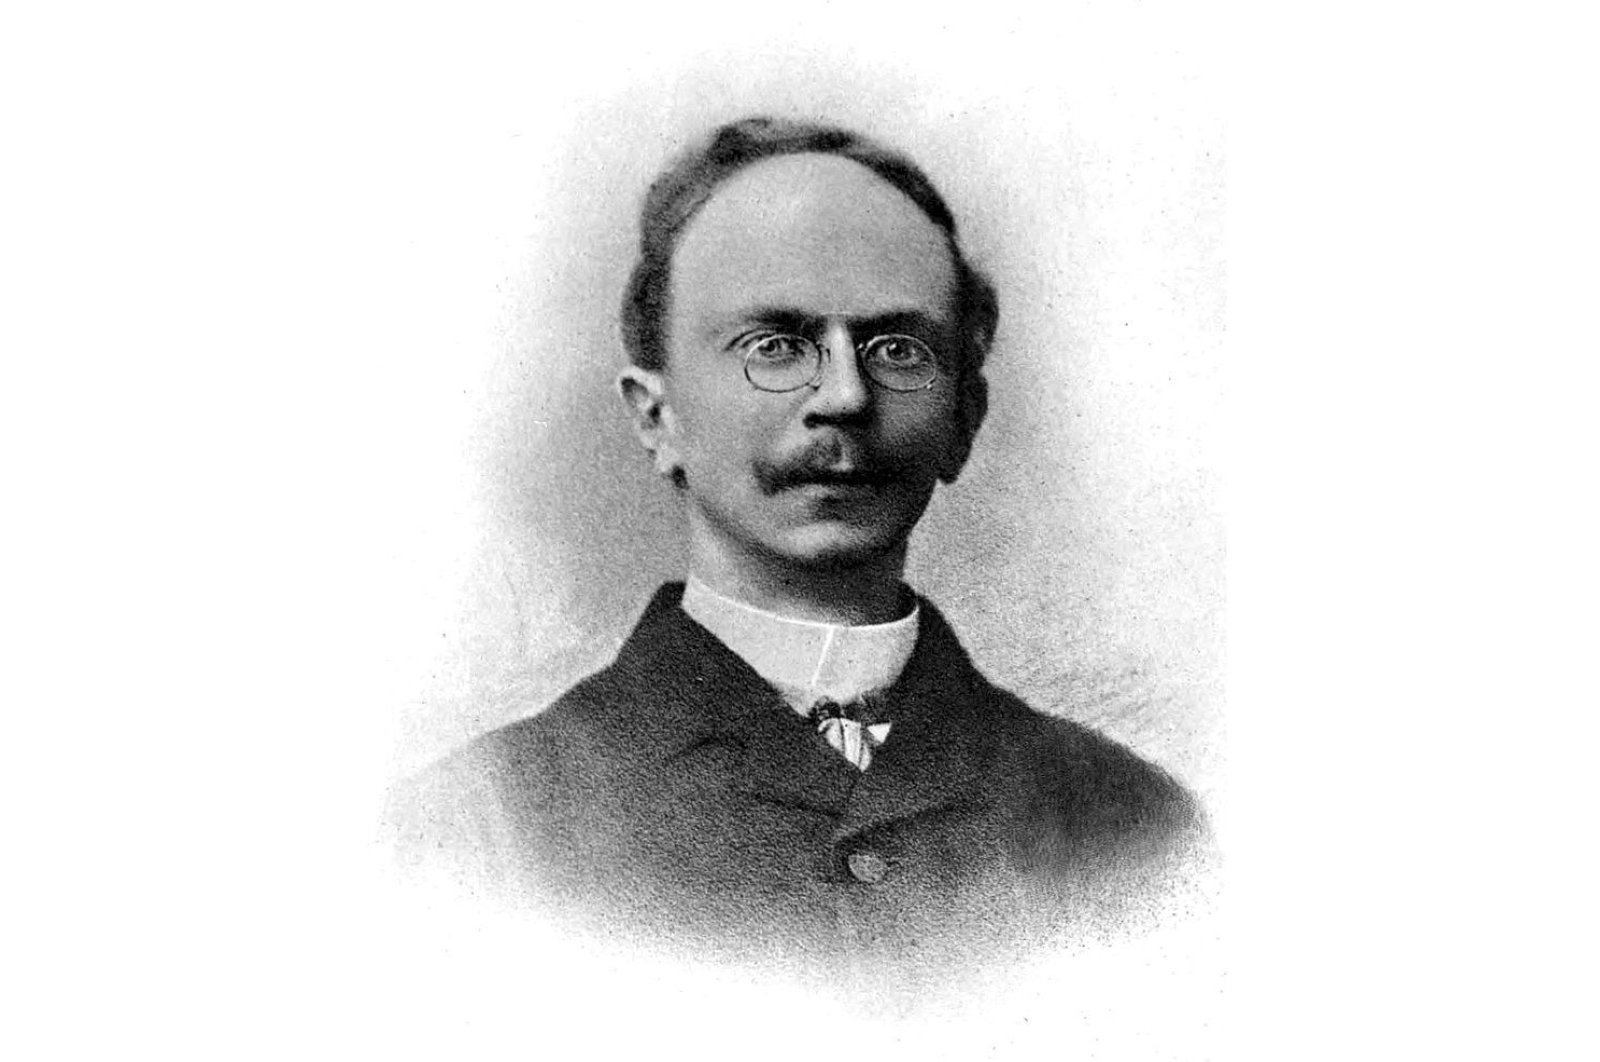 After acquiring a knowledge of the Arabic and Persian languages, Elias John Wilkinson Gibb became especially interested in the Turkish language and literature.